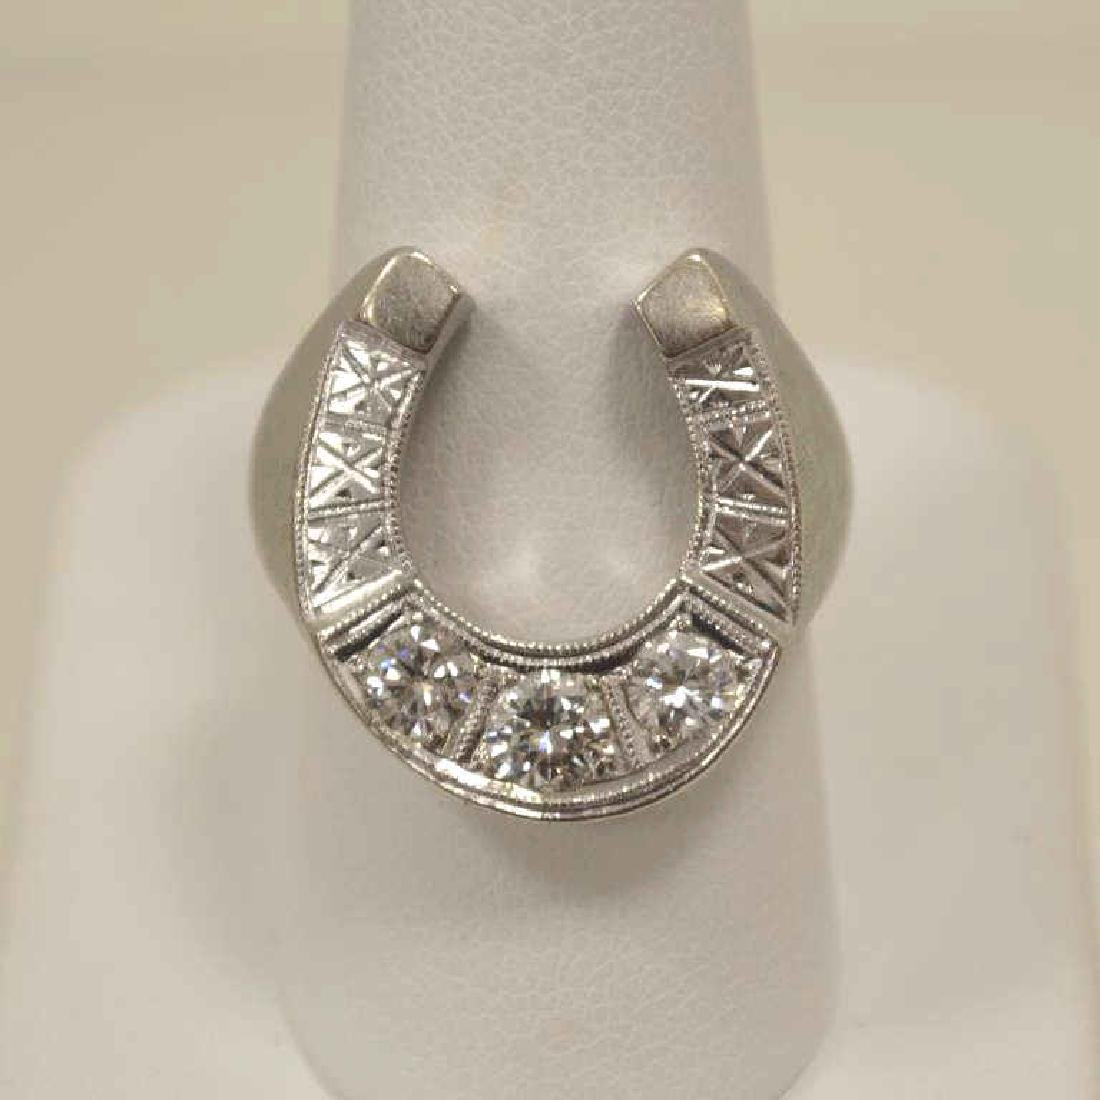 Man's diamond horse shoe ring